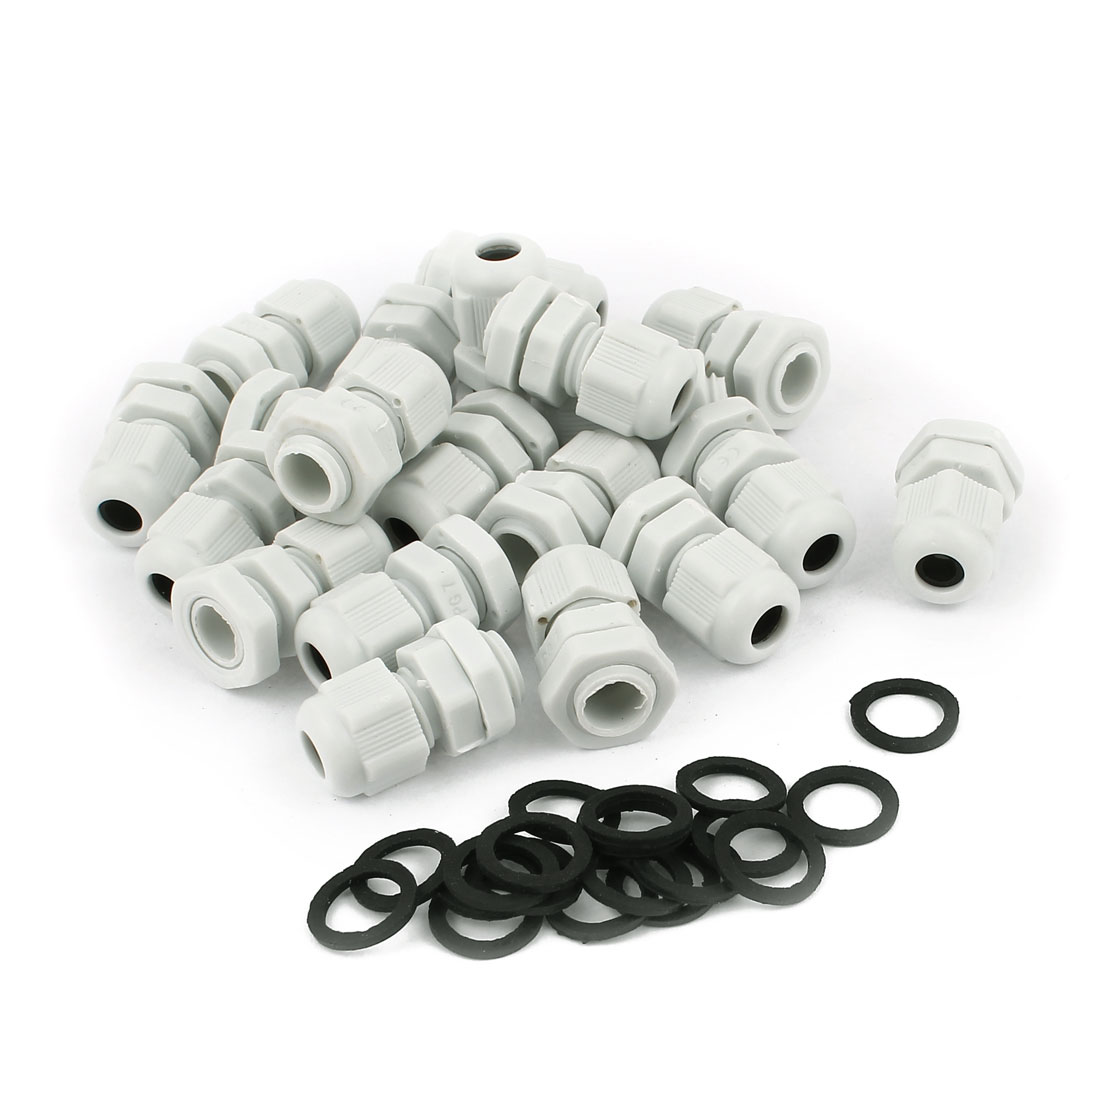 20 Pcs PG7 White Plastic 3-6.5mm Dia Waterproof Cable Glands Connectors